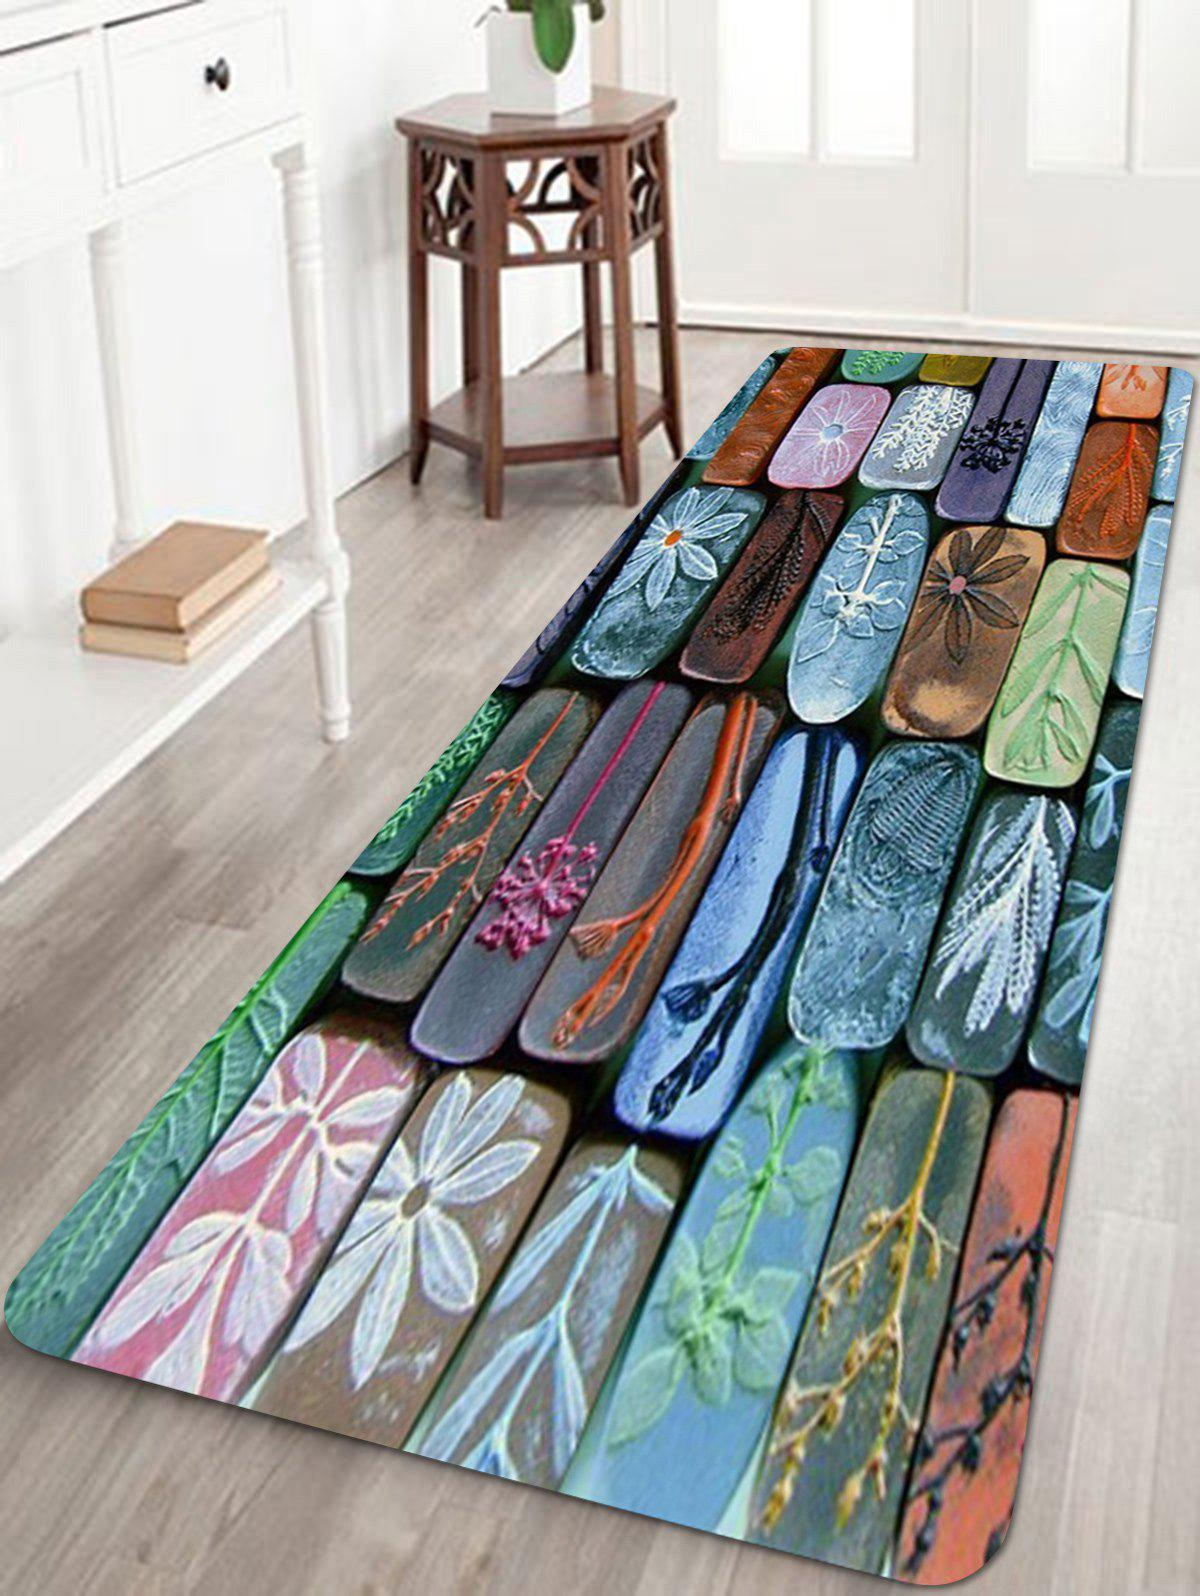 Colorful Stones Wall Print Floor Area Rug - multicolor W24 INCH * L71 INCH